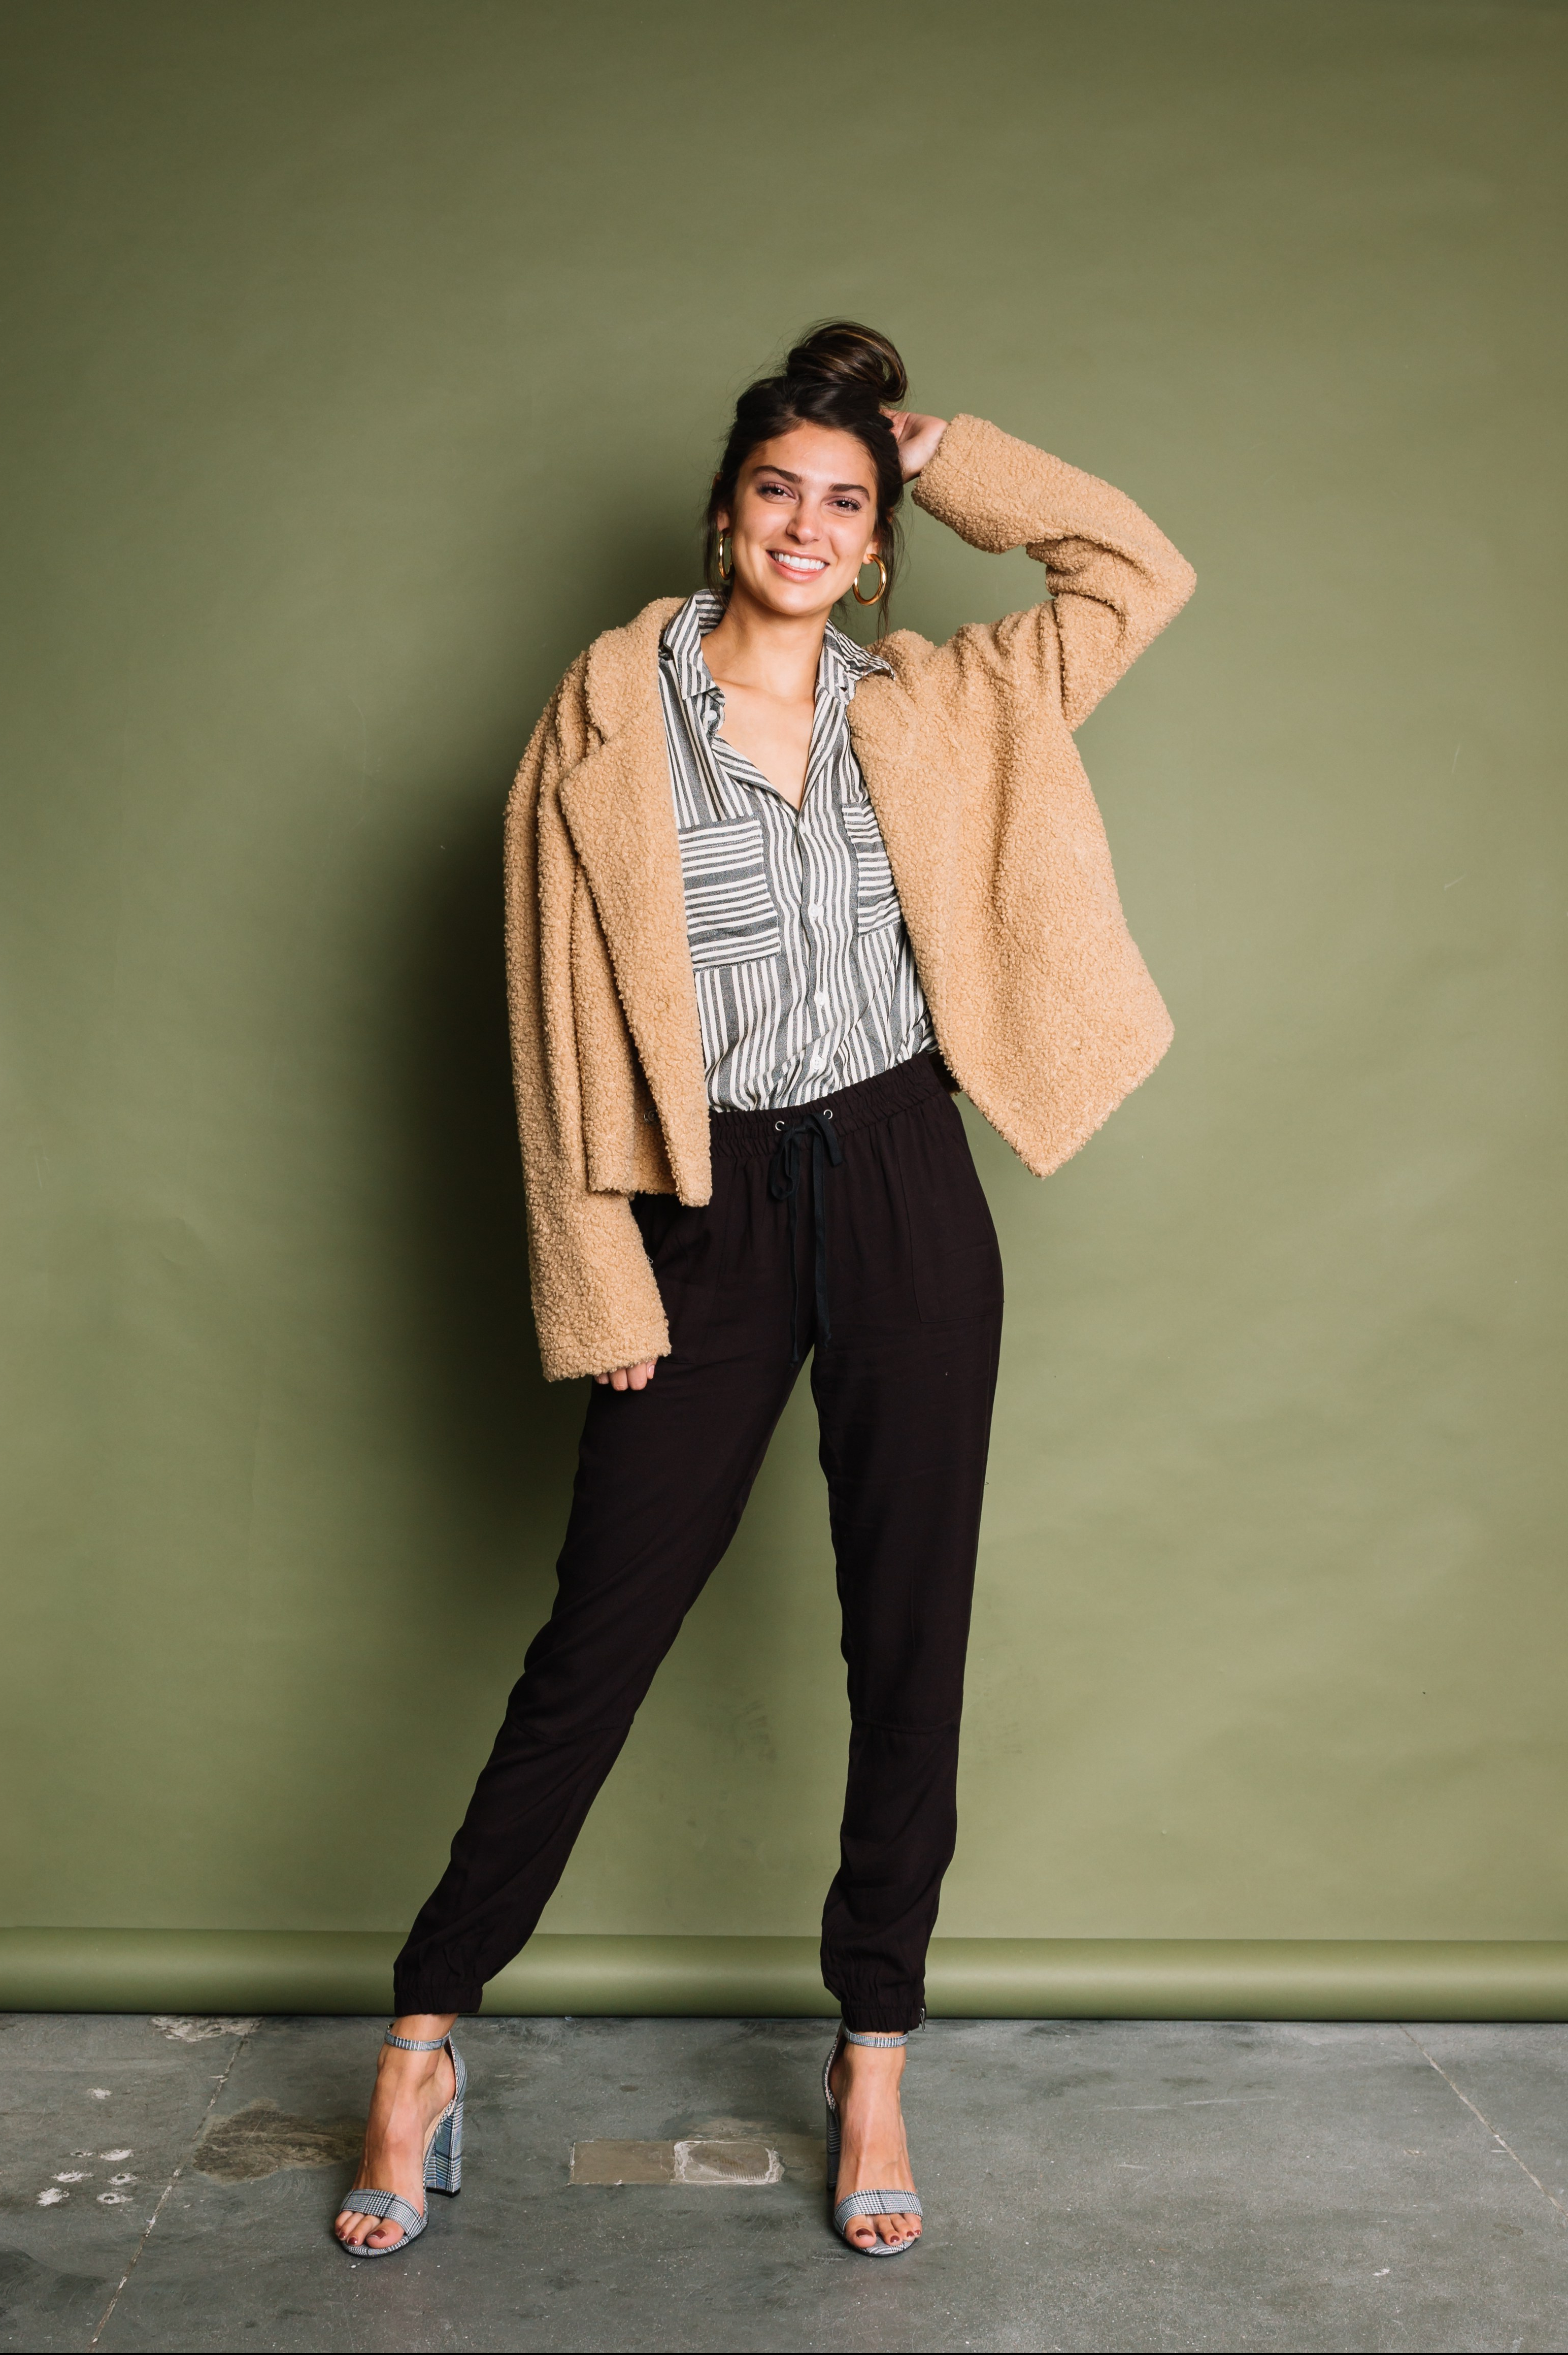 Women's Smart Casual Outfit - Trousers and button-up Shirt from Buckle